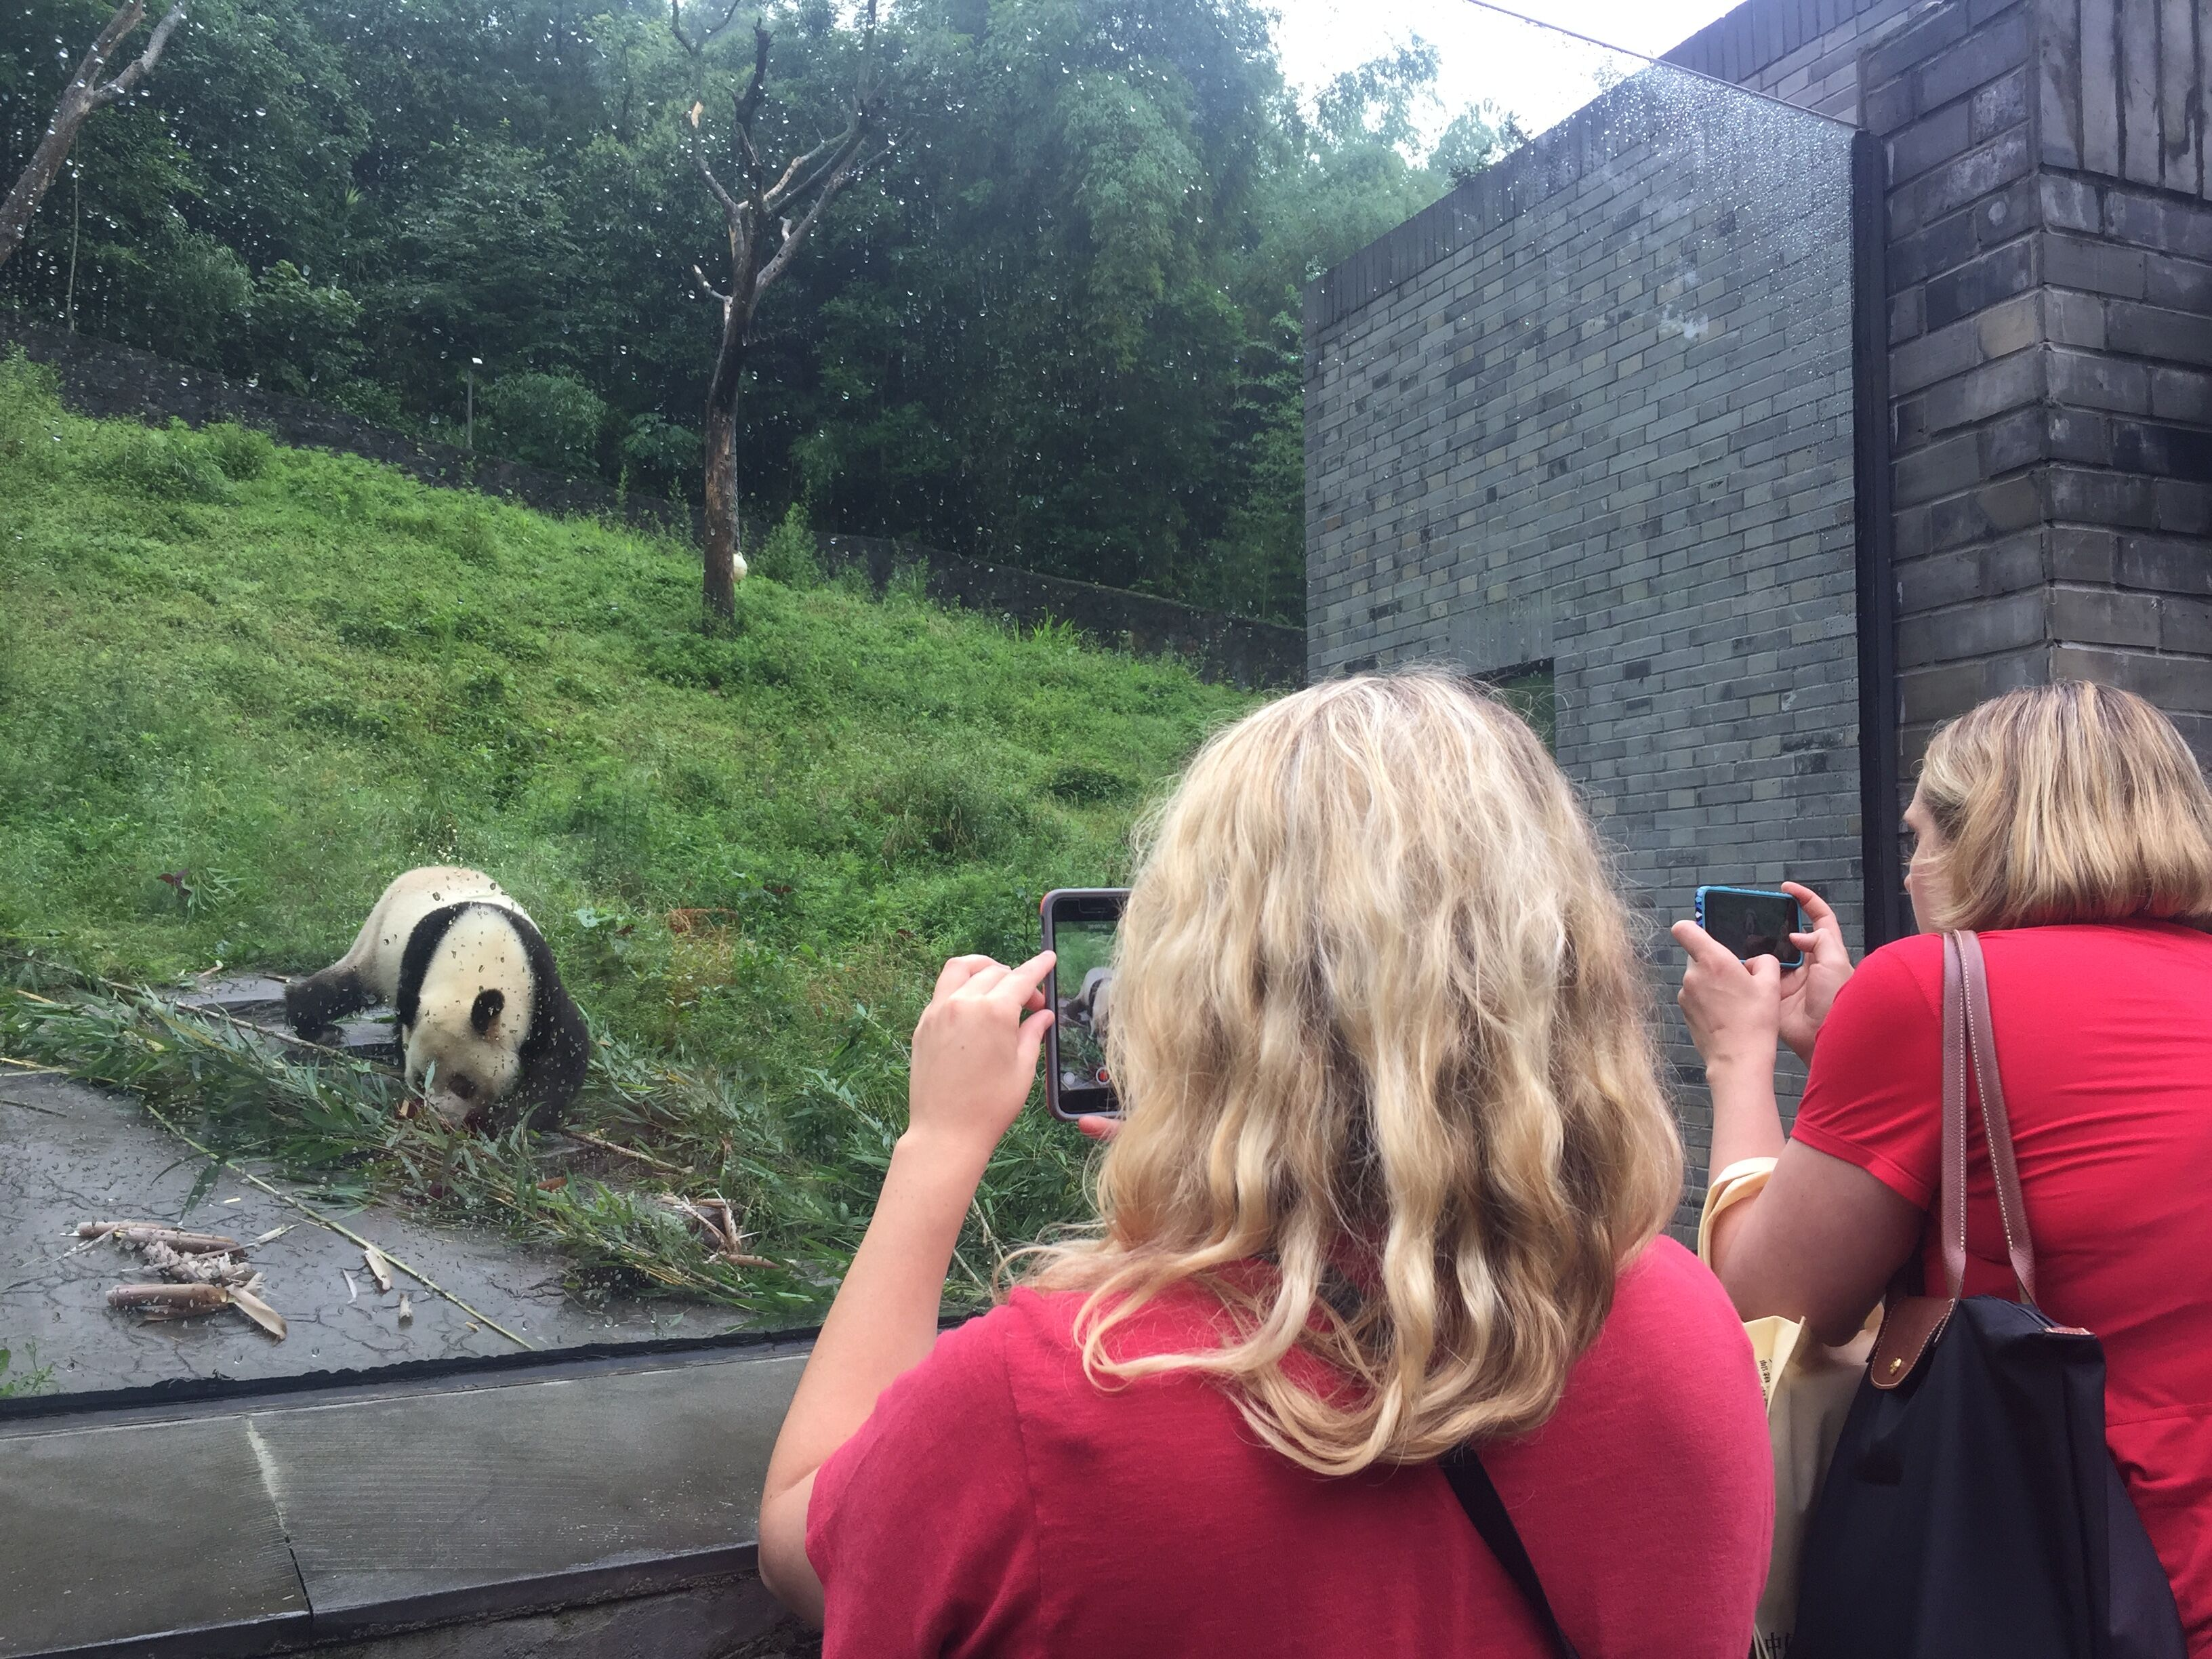 Take photos for the pandas